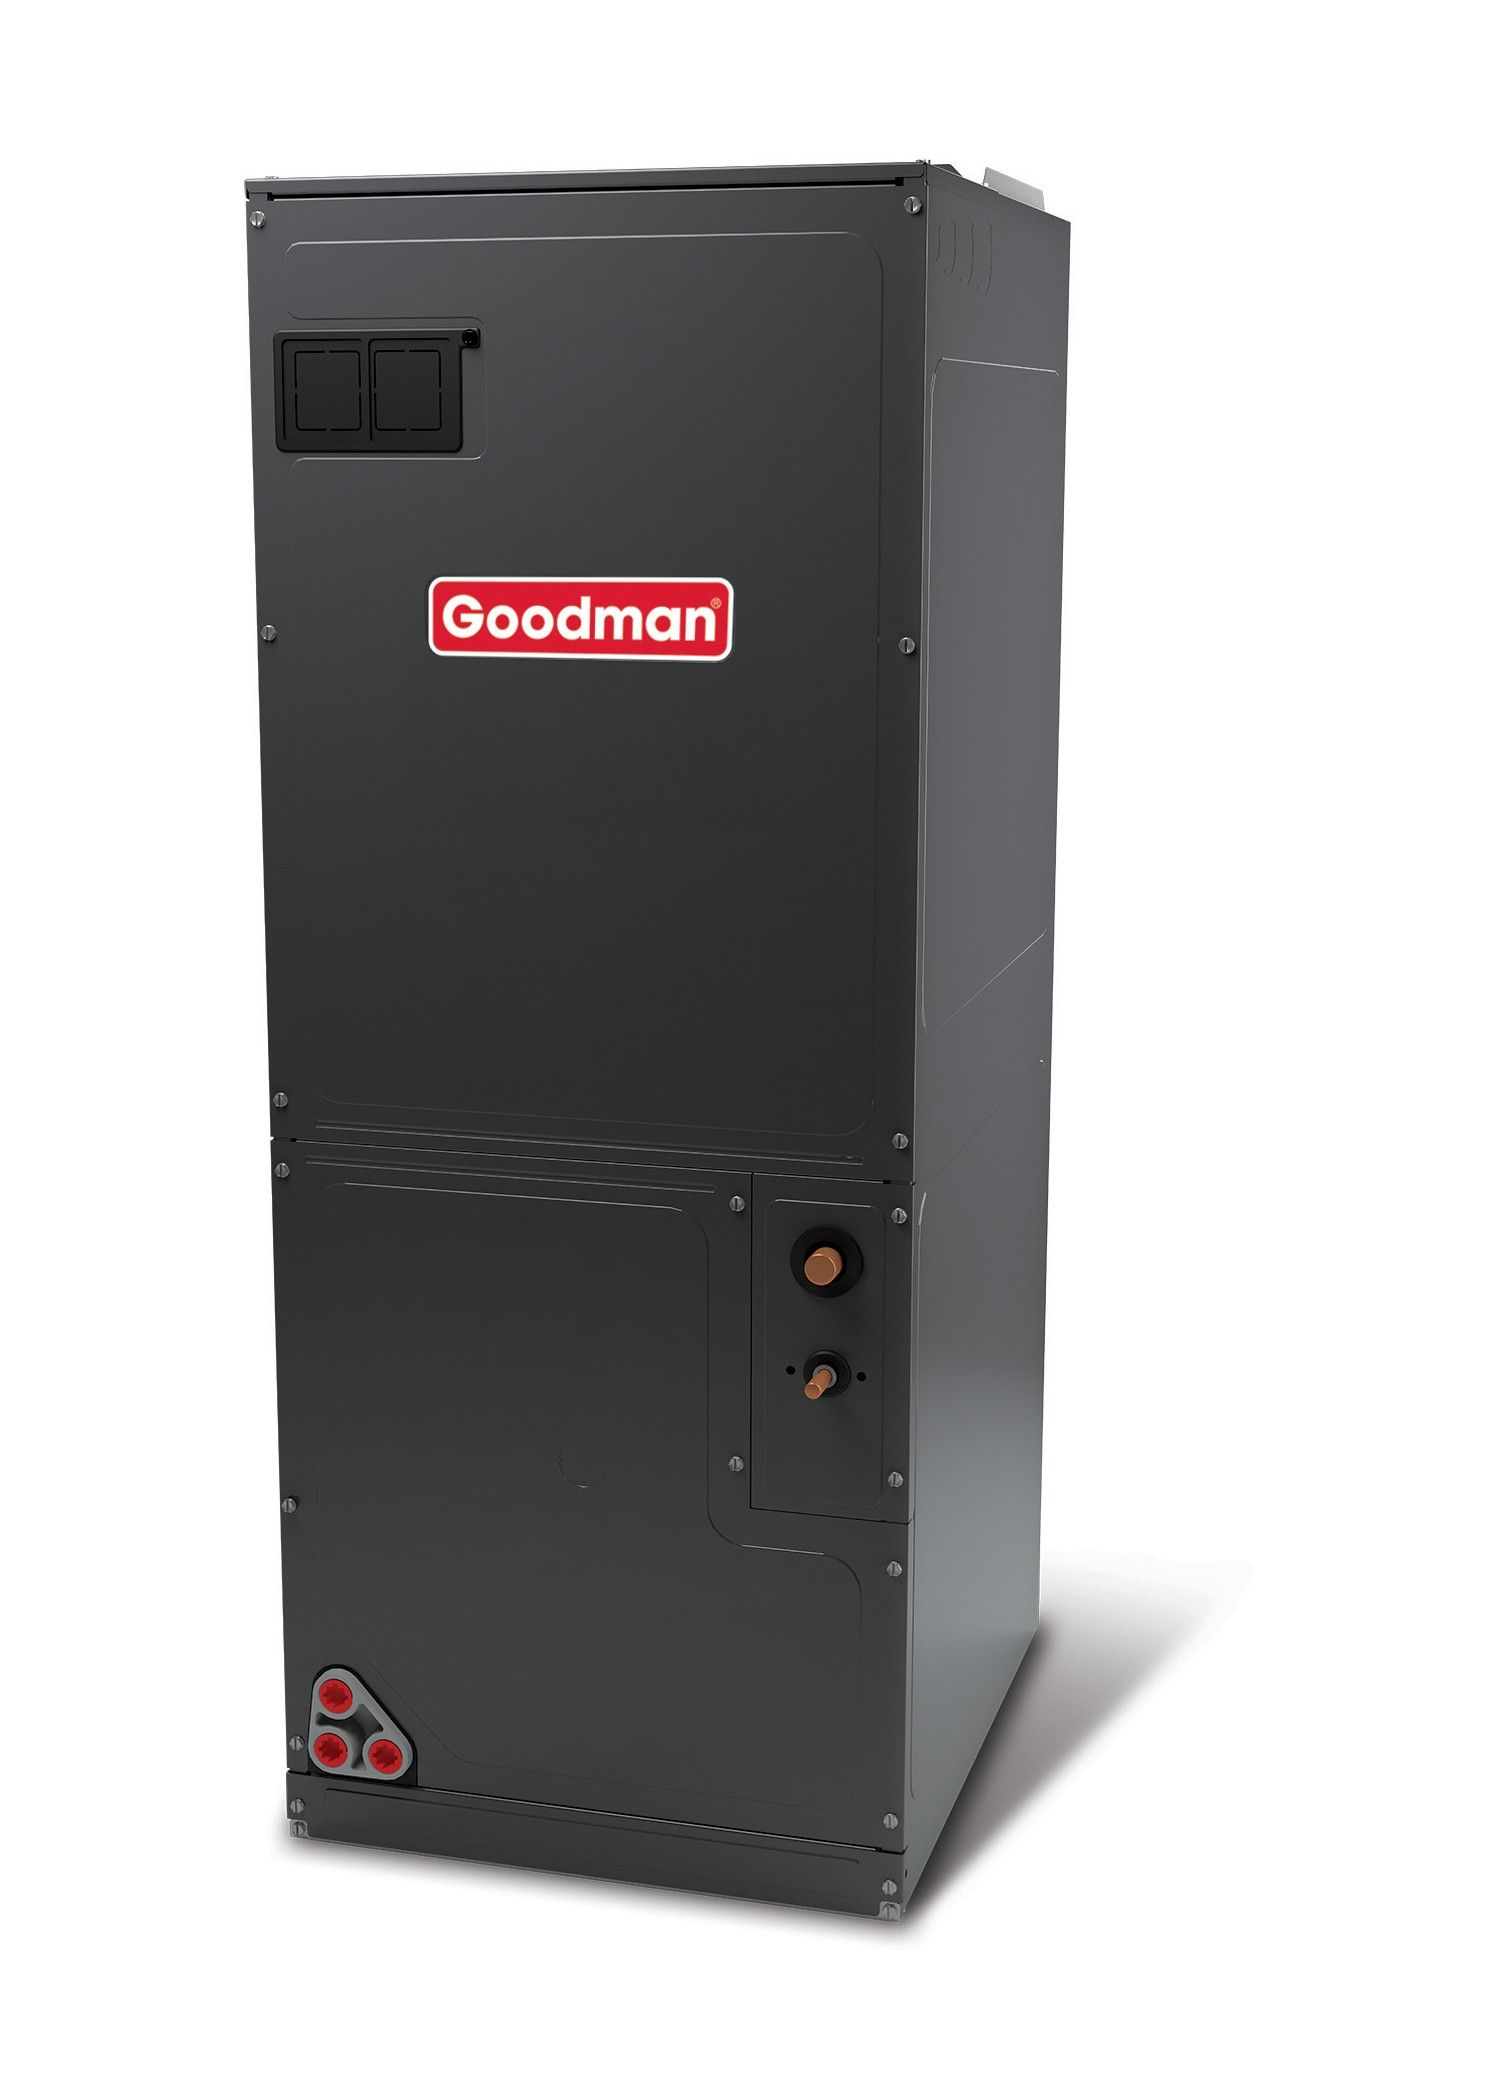 Goodman 4.0 Ton ASPT High-Efficiency Multiposition Air Handler